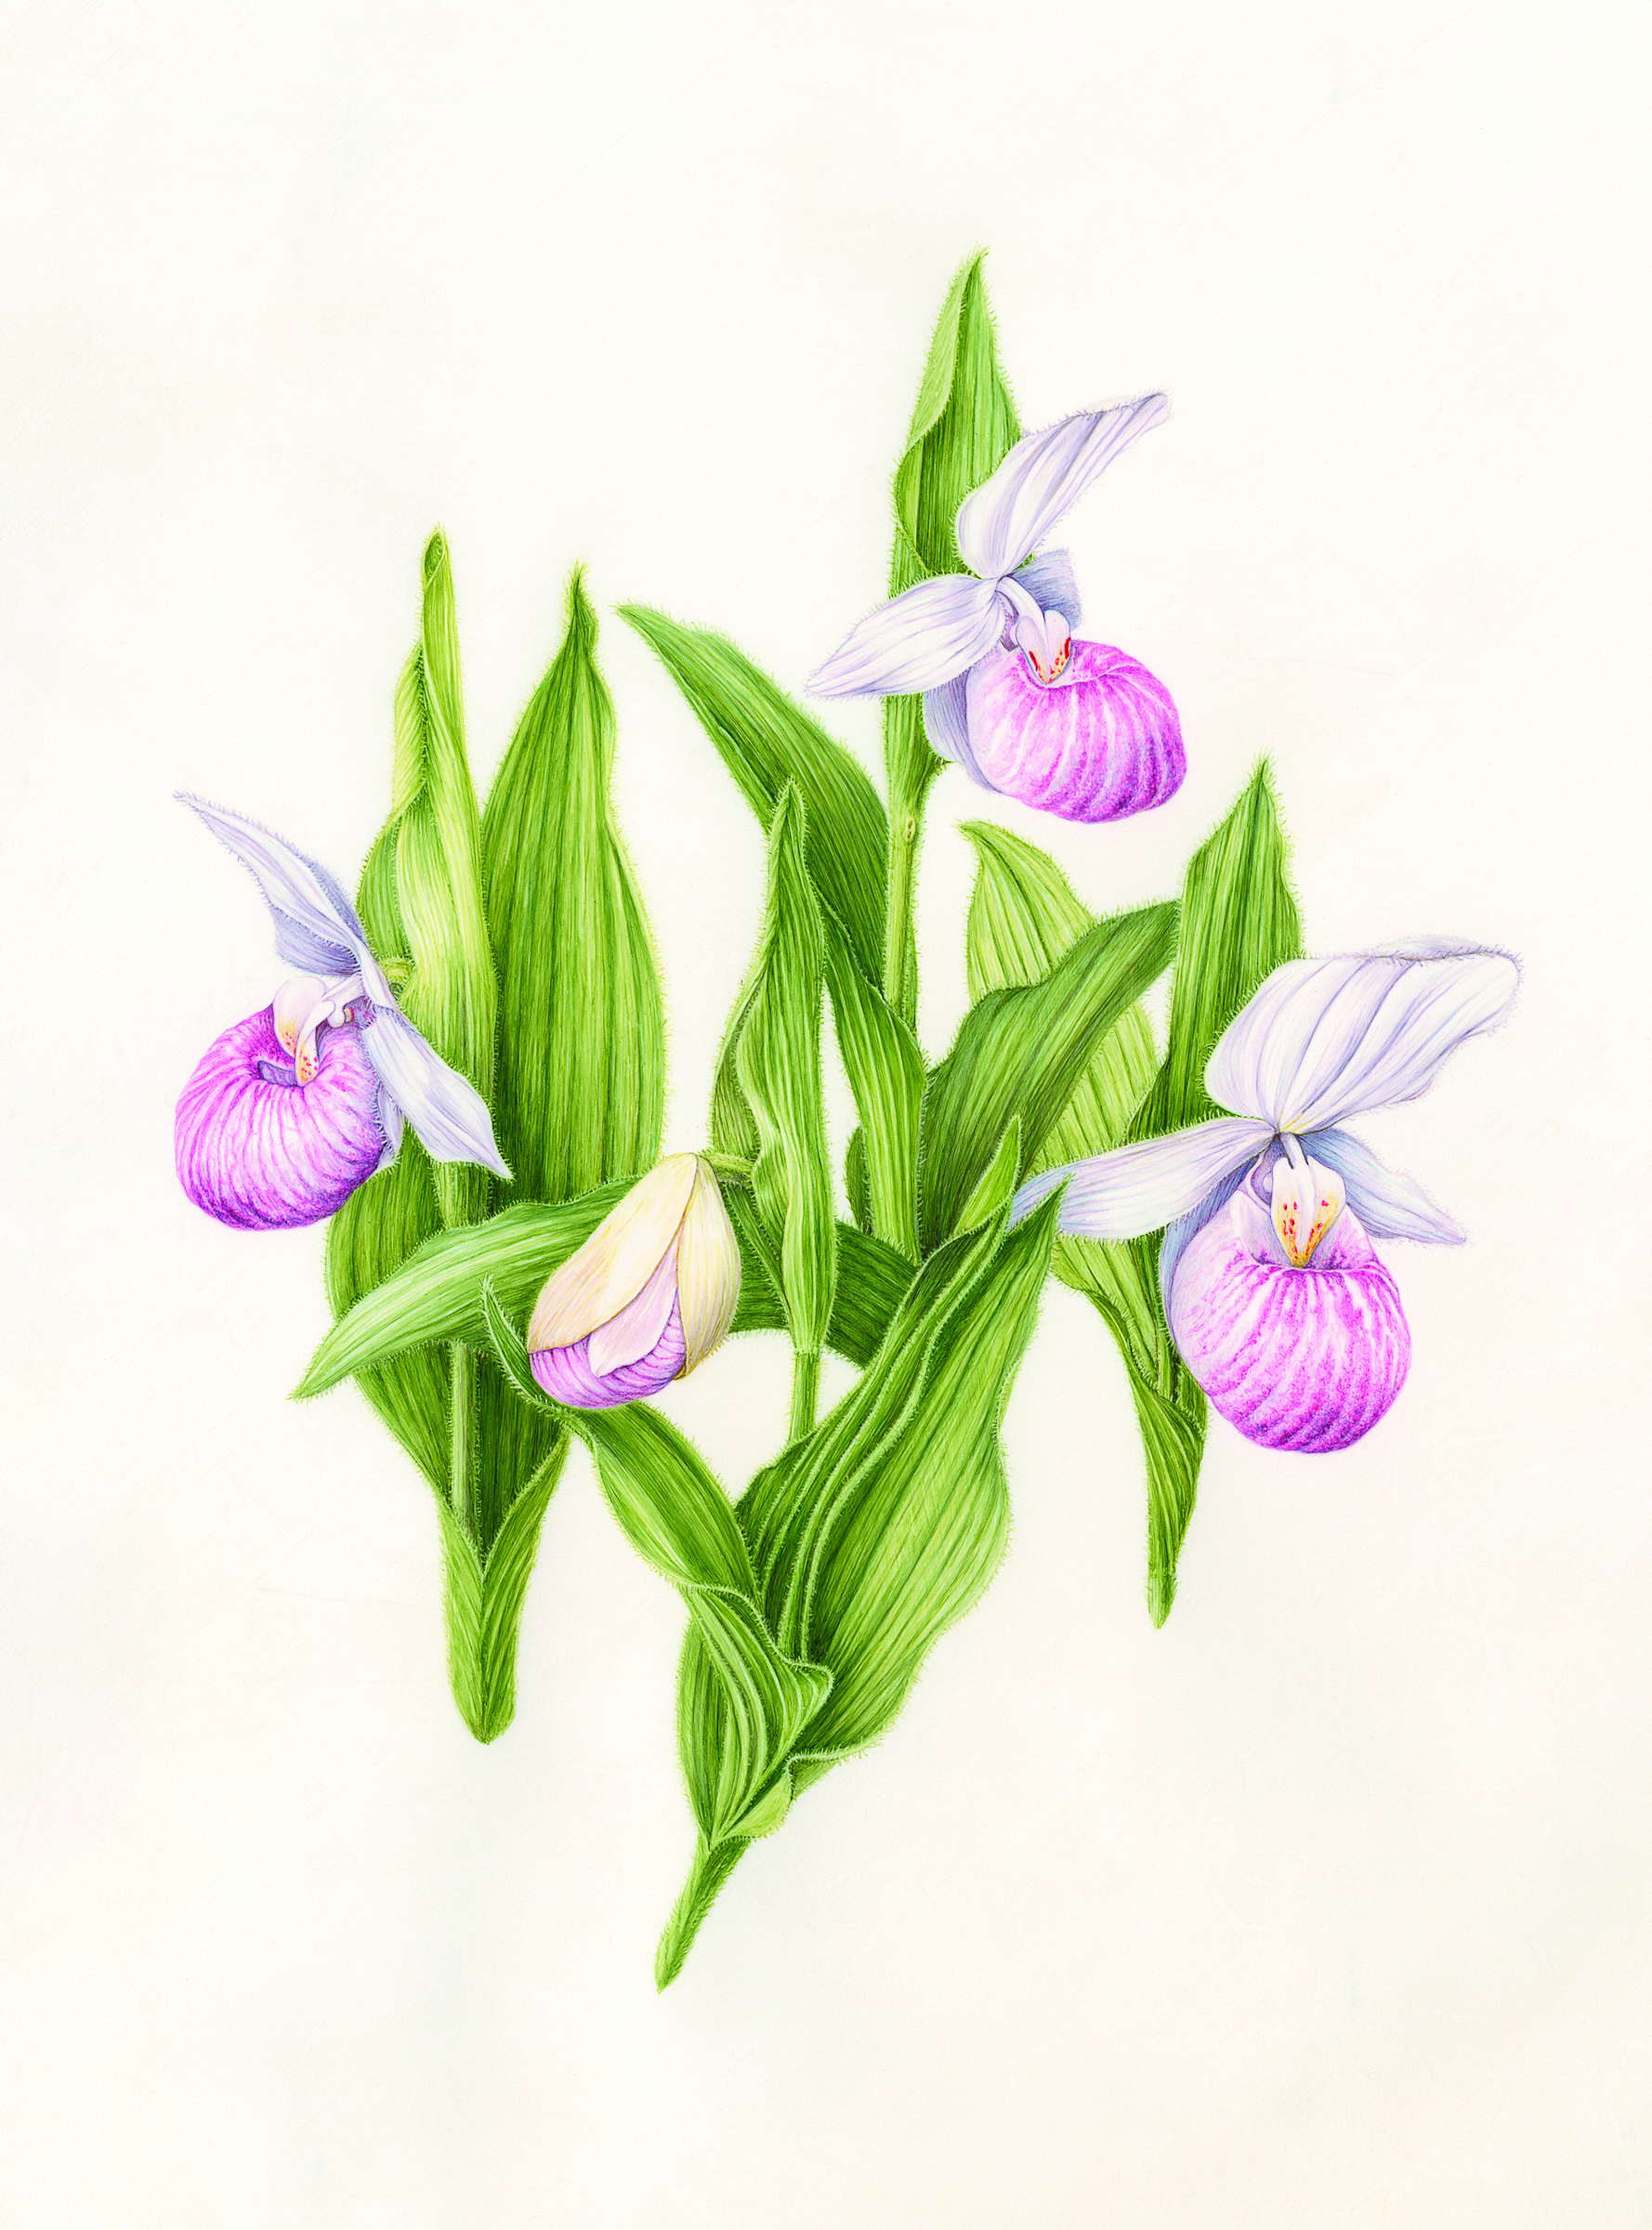 Lady's Slipper by Linda Powers, one of the pictures on show at the exhibit. (United States Botanic Garden)